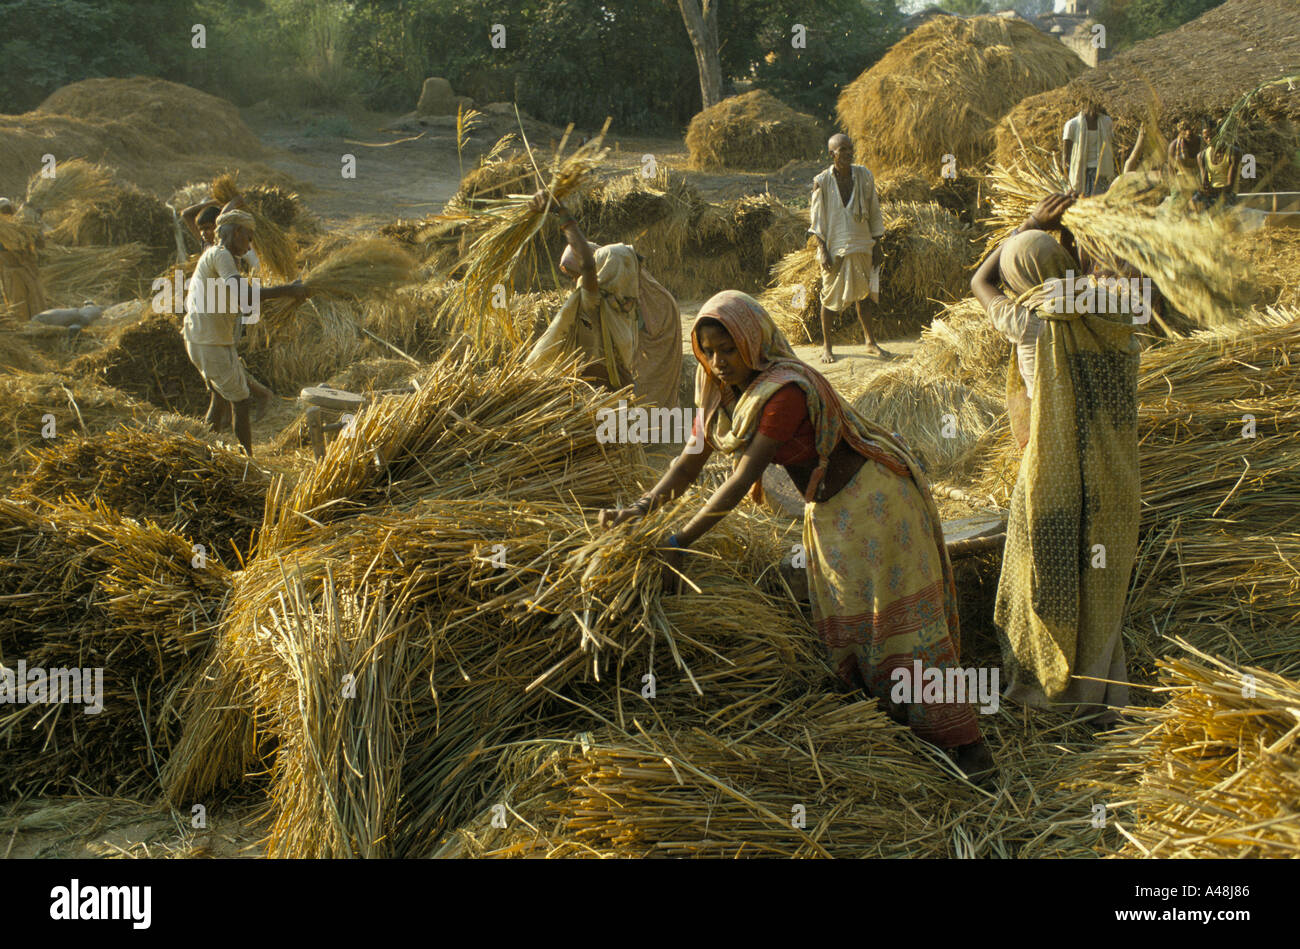 untouchable or low caste women threshing corn at a village near lucknow north india - Stock Image